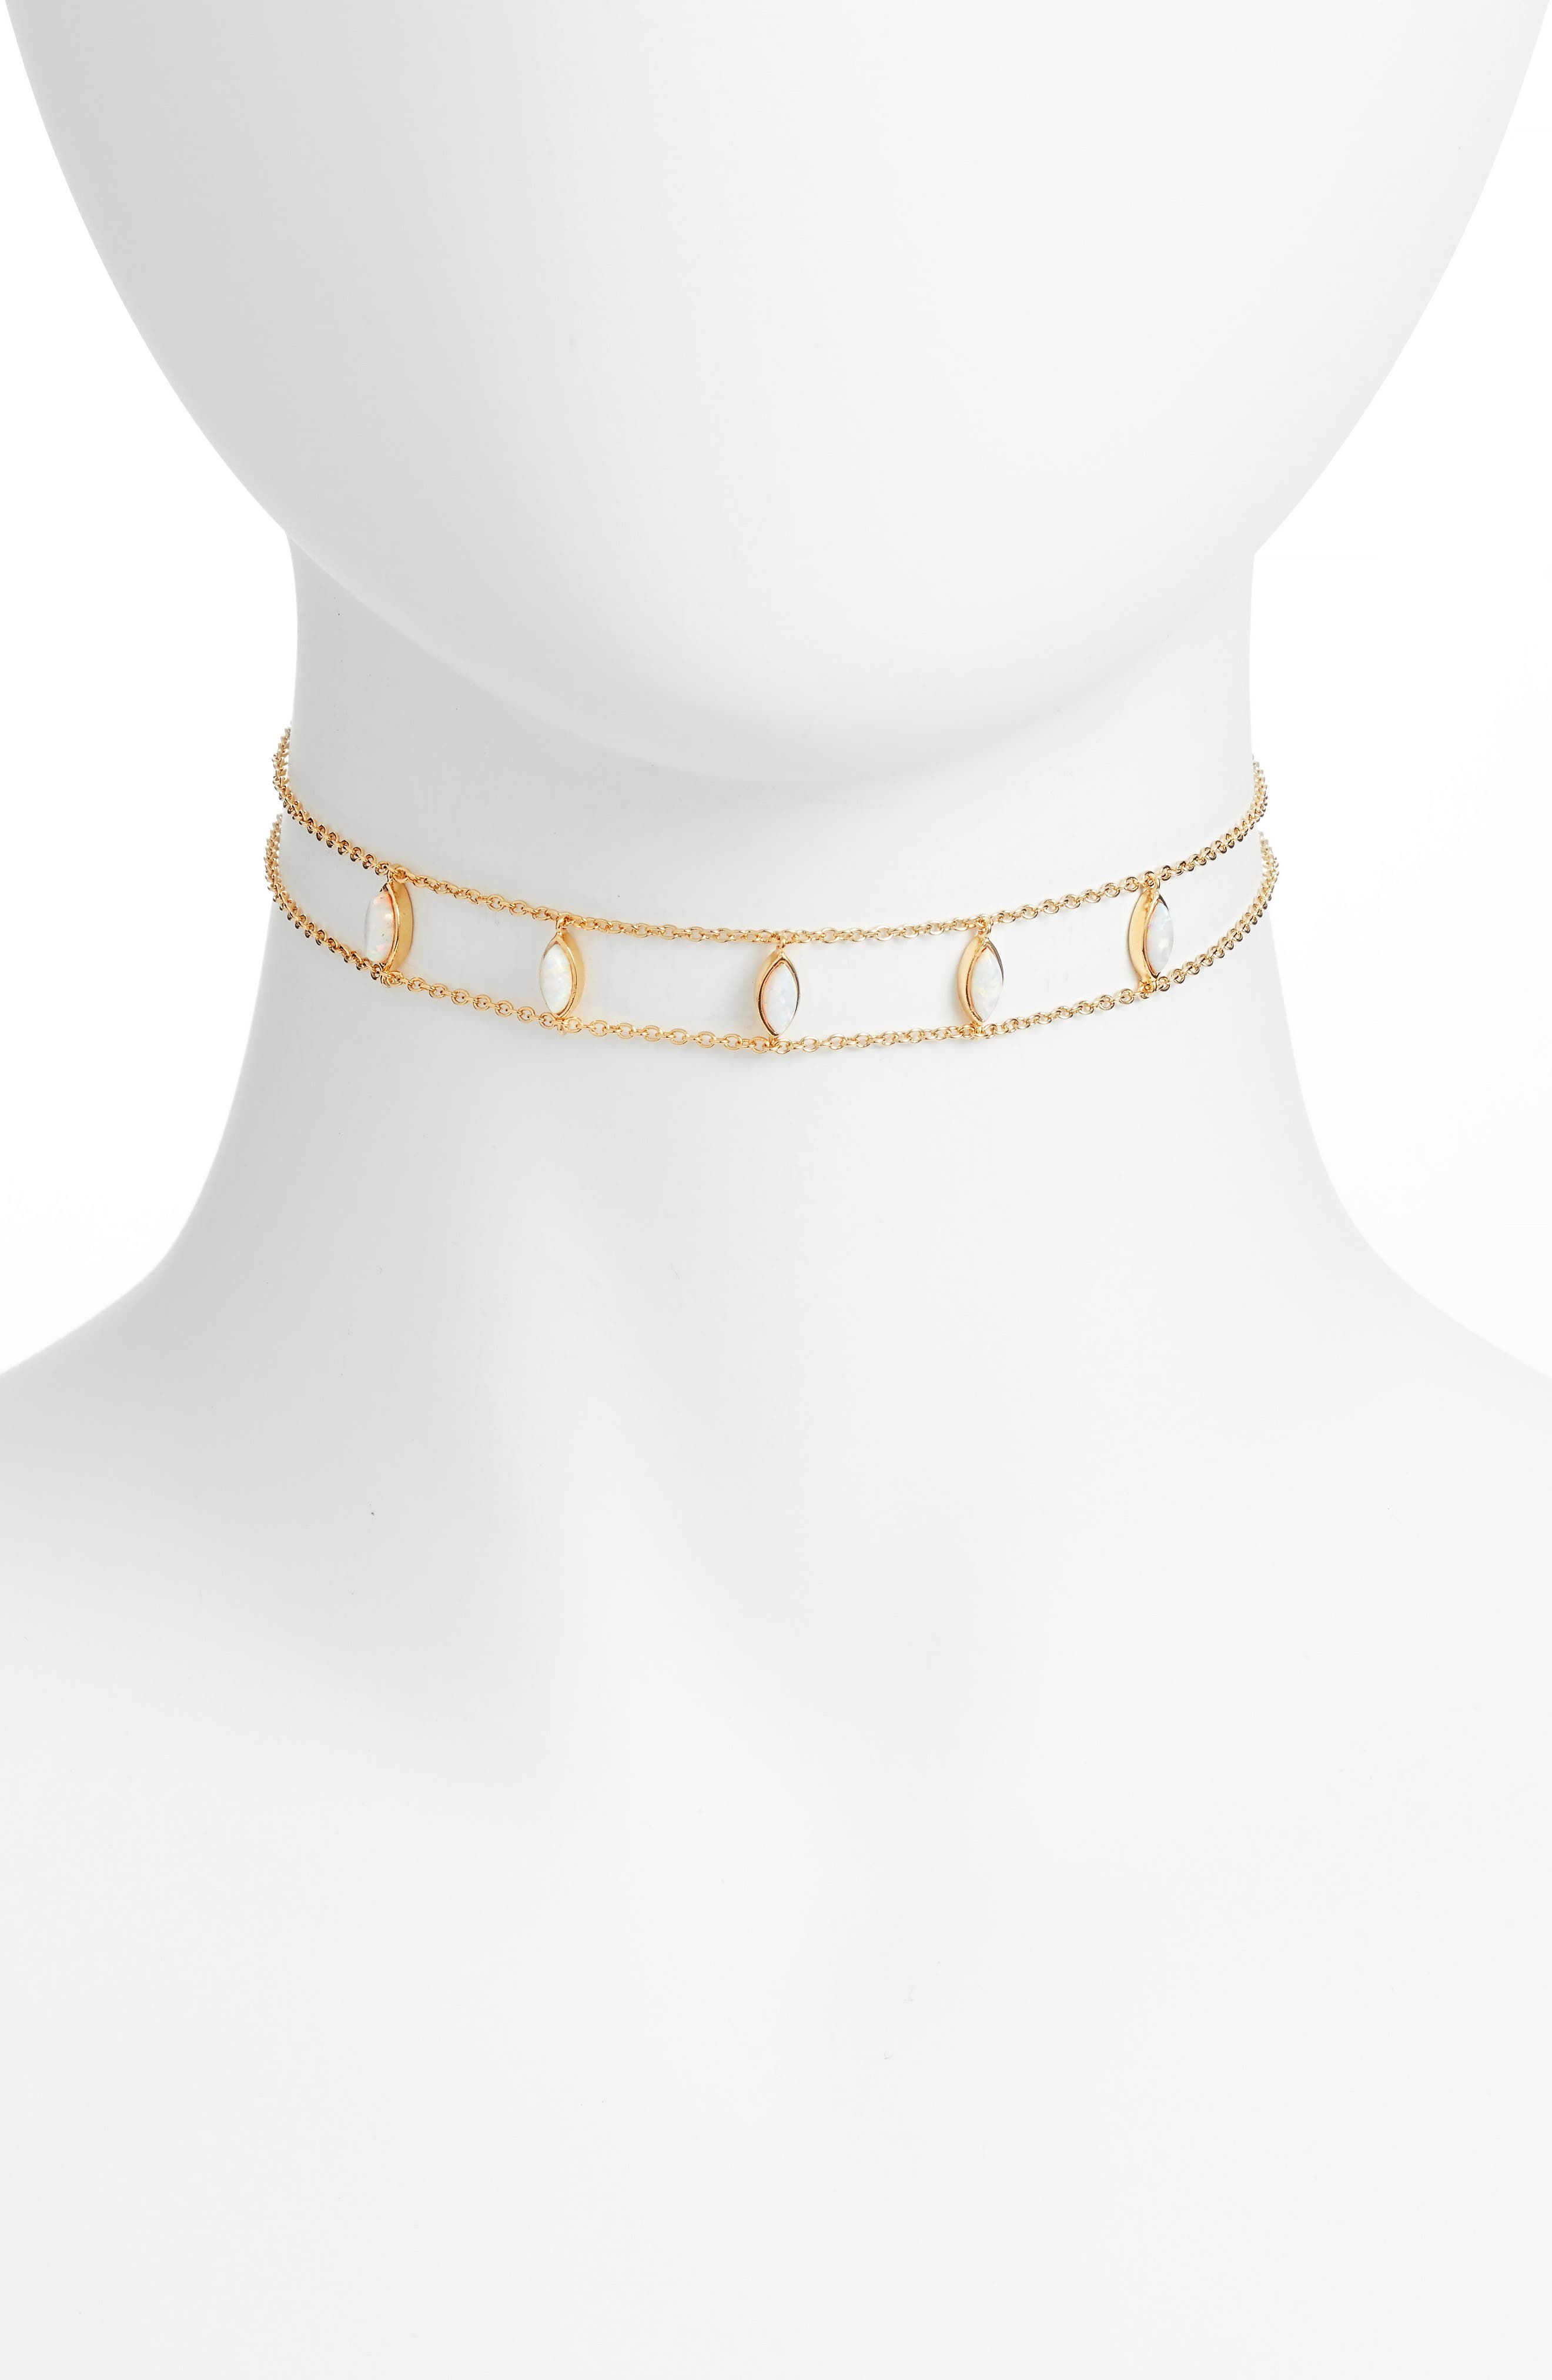 Joie Marquis Choker Necklace,                             Main thumbnail 1, color,                             Gold/ Simulated Opal